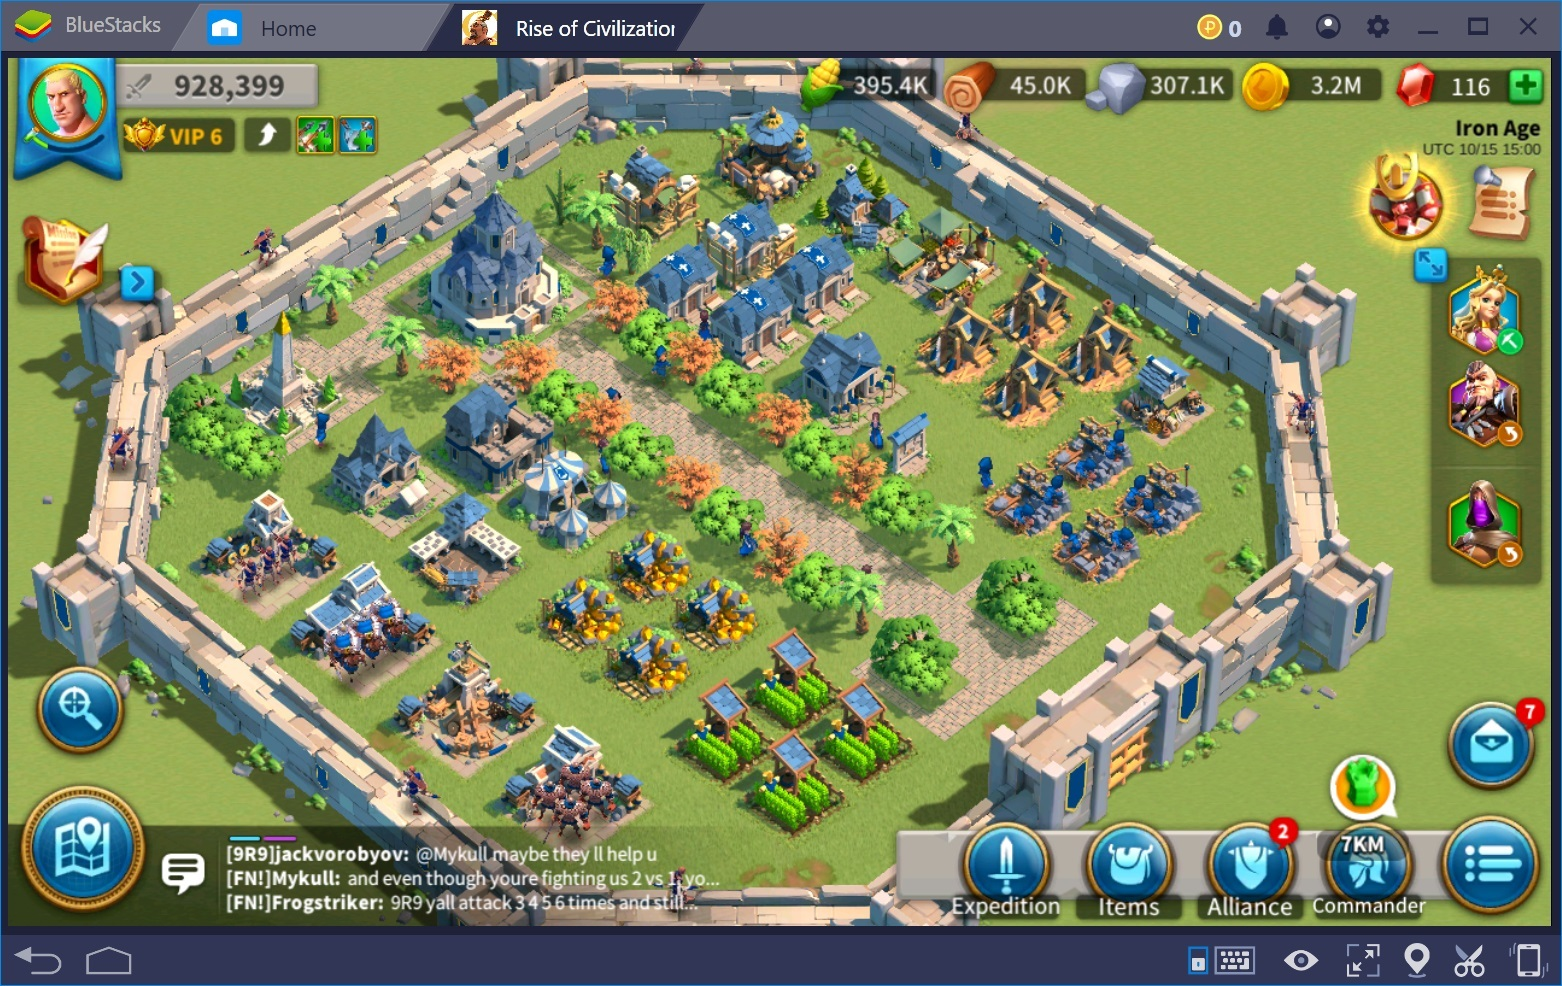 Rise of Kingdoms City Building Guide: Create Your Own Urban Paradise